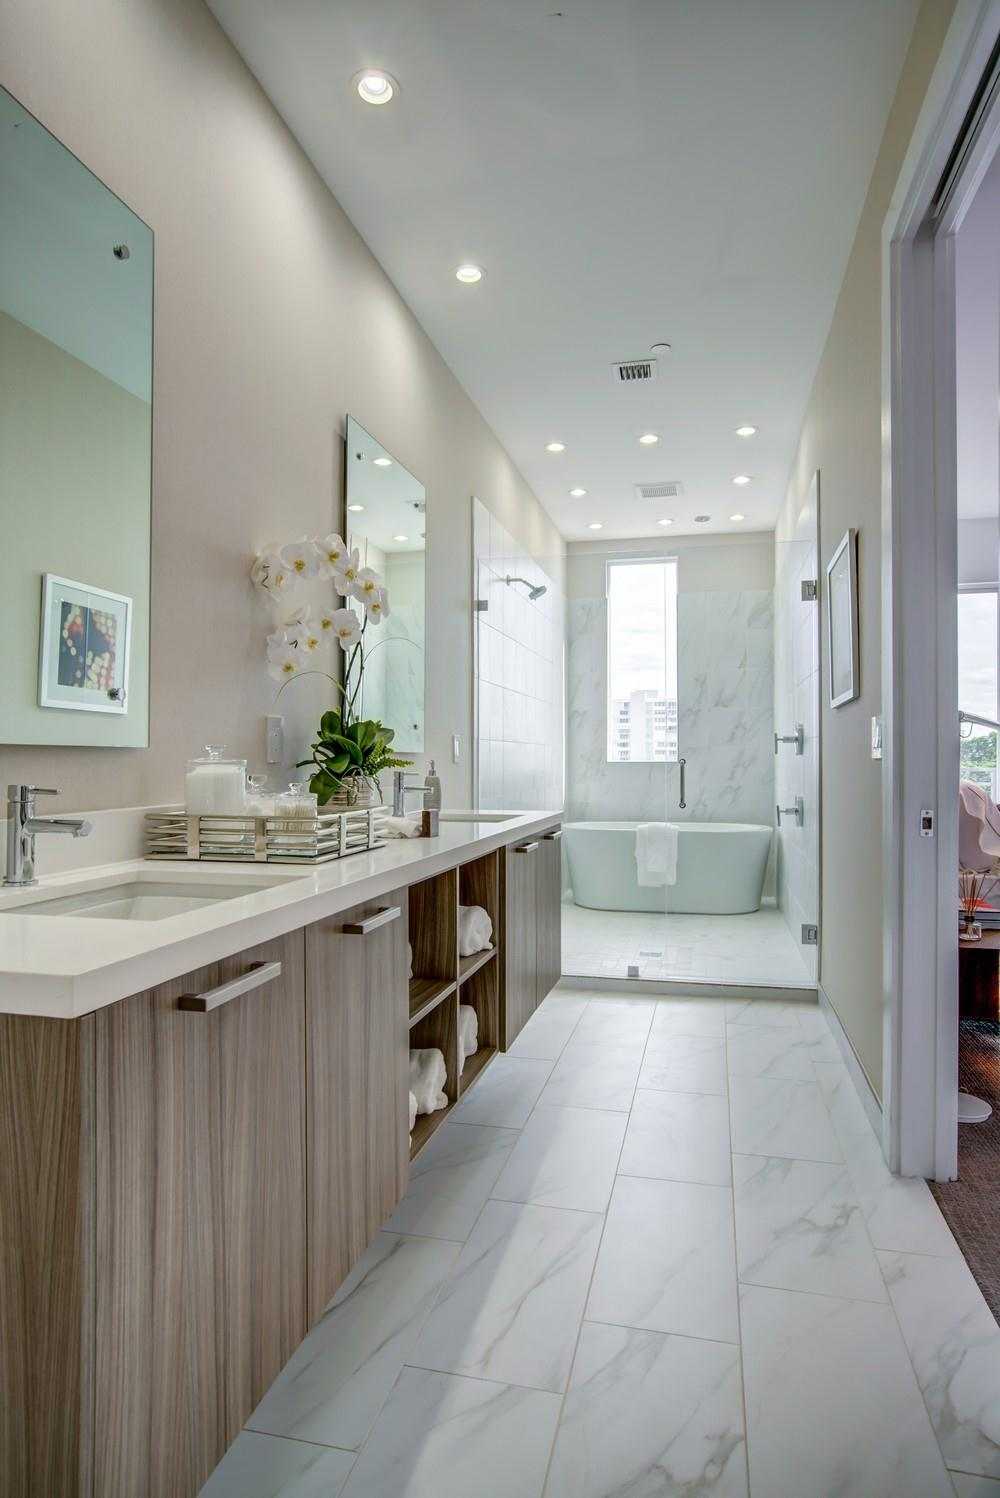 Bathroom featured in the Model E - West By Sobel Co in Broward County-Ft. Lauderdale, FL